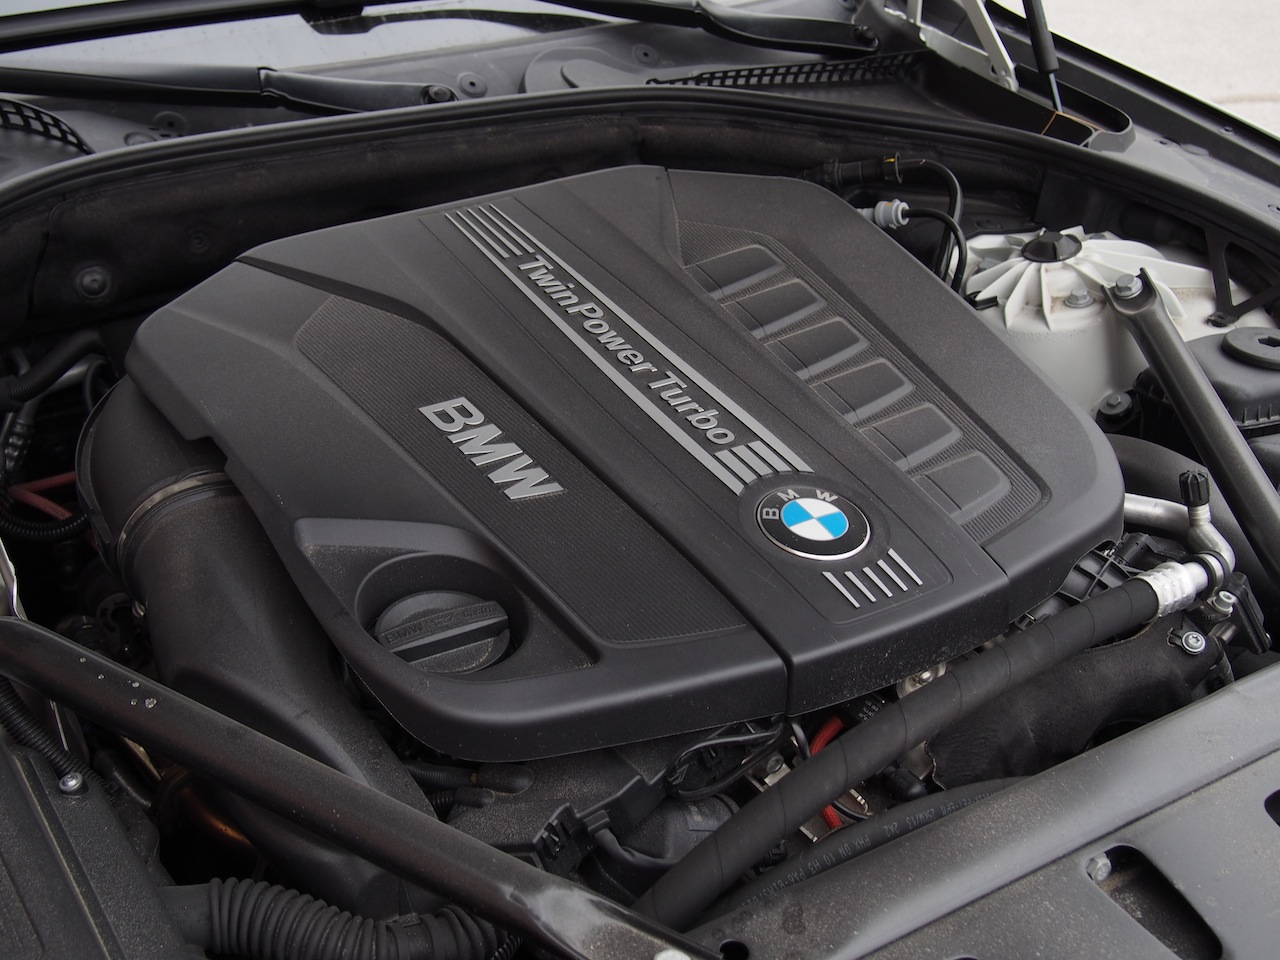 2014 BMW 535d xDrive Review - Cars, Photos, Test Drives, and